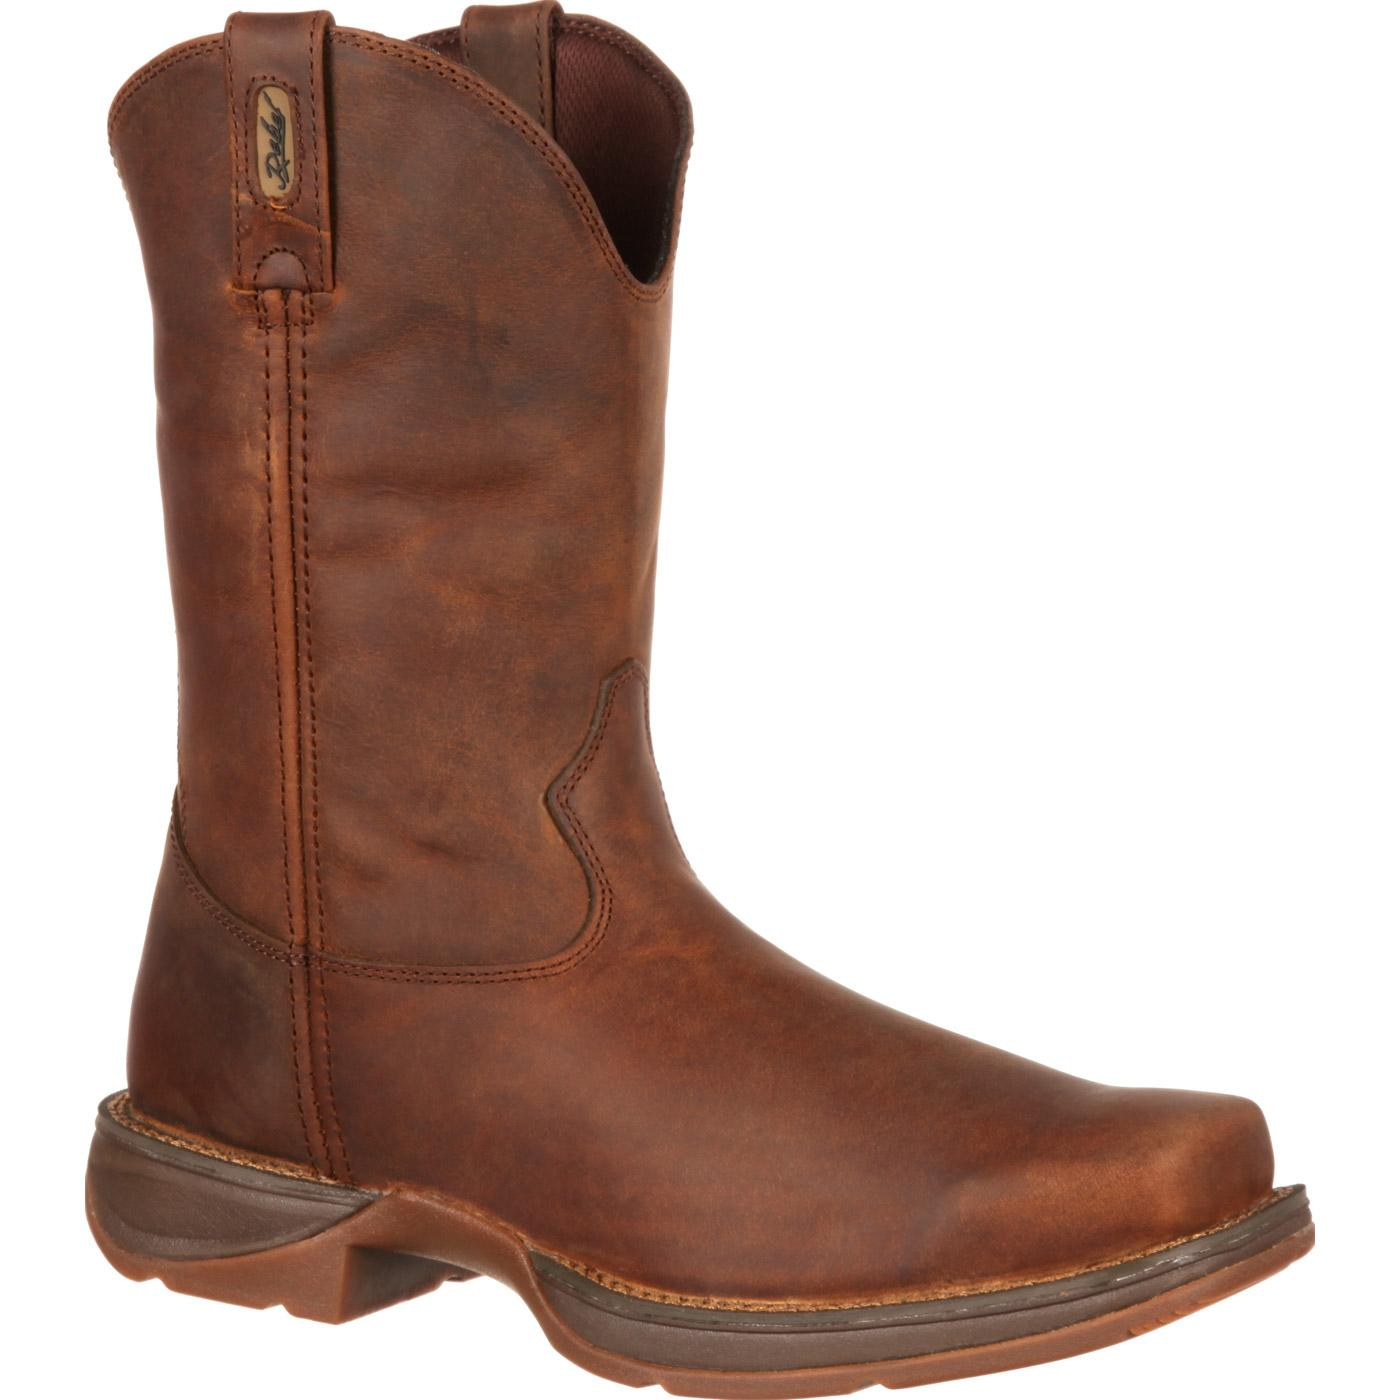 3c21ba81a14 Rebel by Durango Brown Pull-On Western Boot